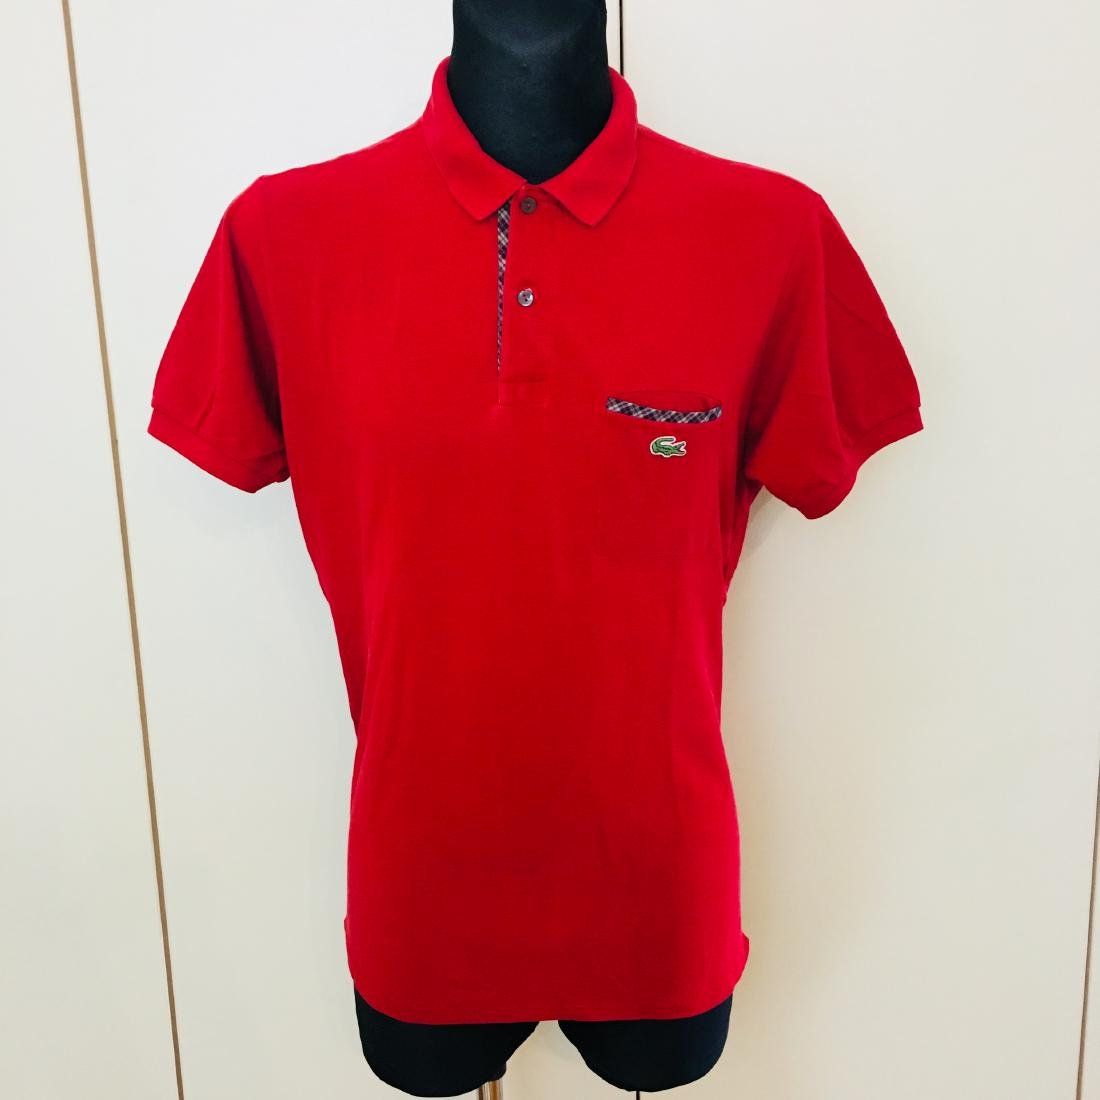 Men's Lacoste Red Polo Shirt Size 5 / L